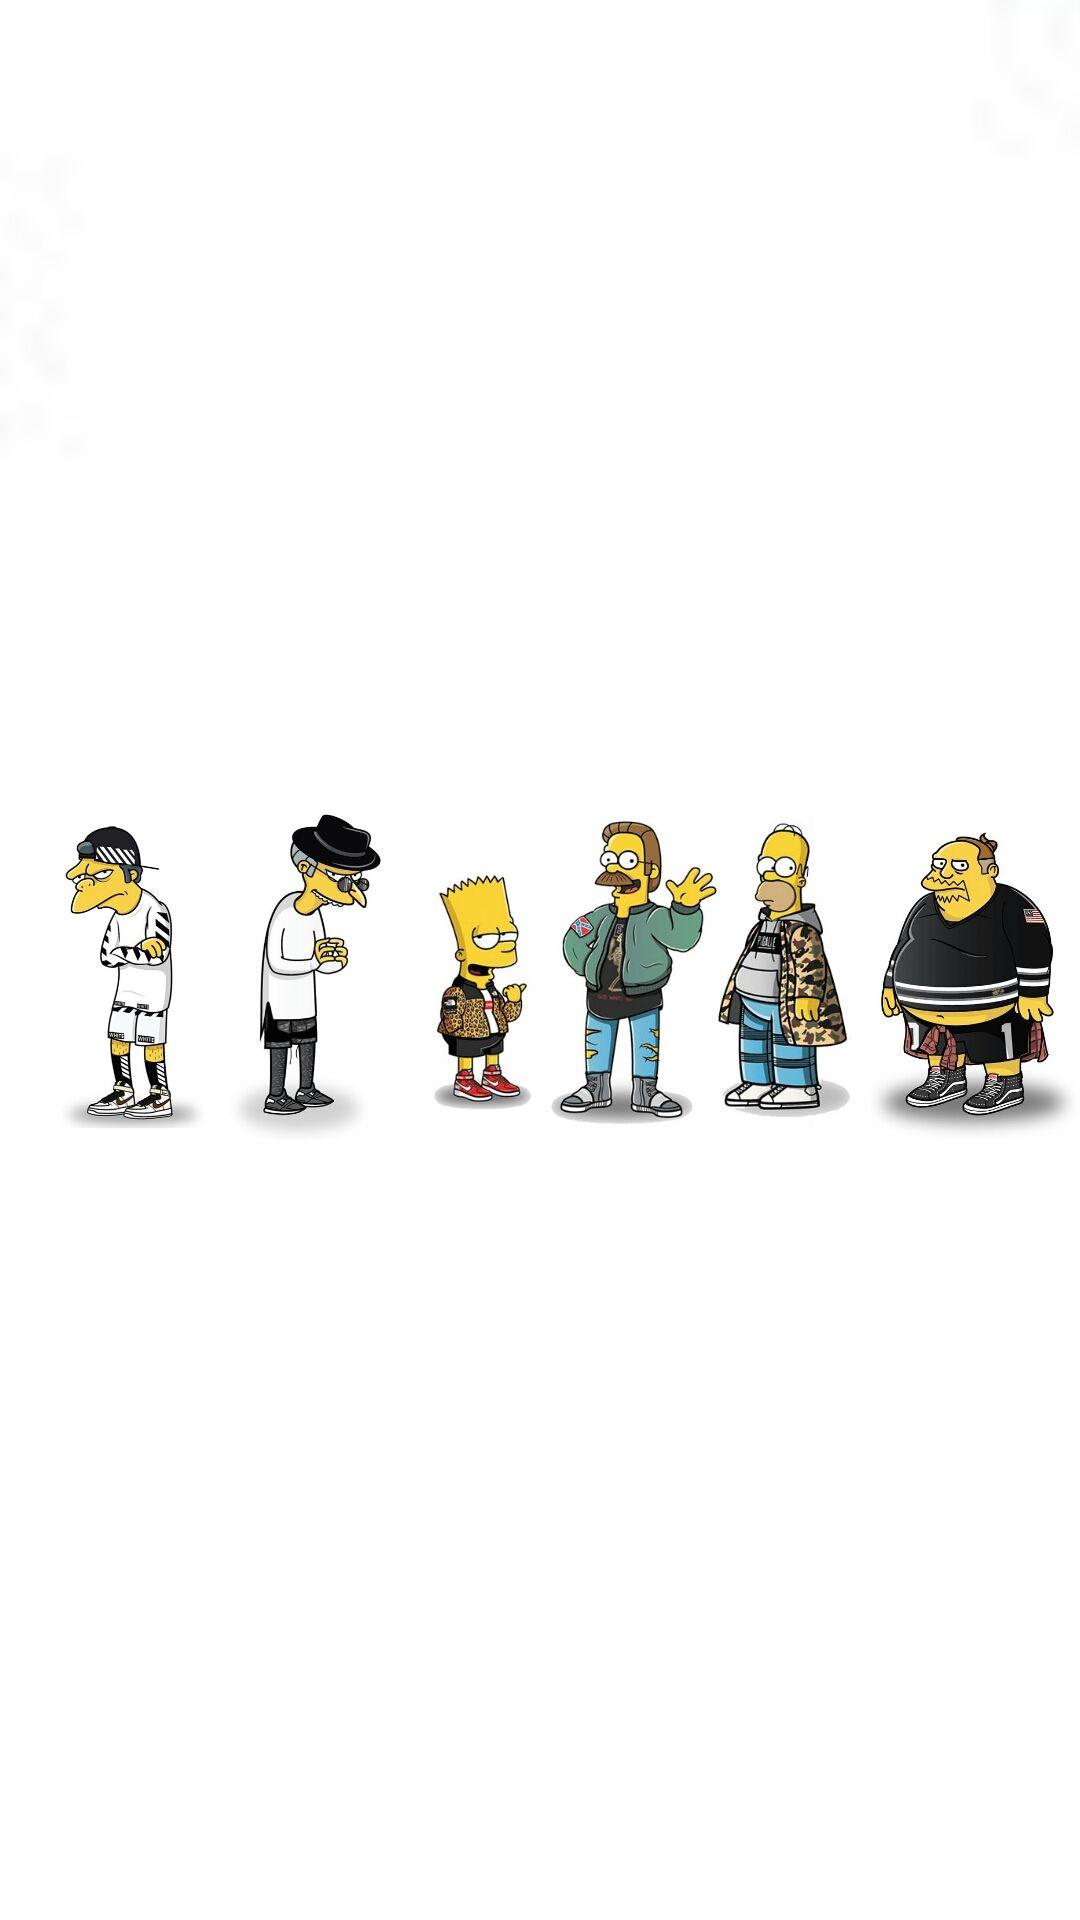 1080x1920 The Simpsons   Set #1   HD   Mobile Wallpaper   20 Images ...